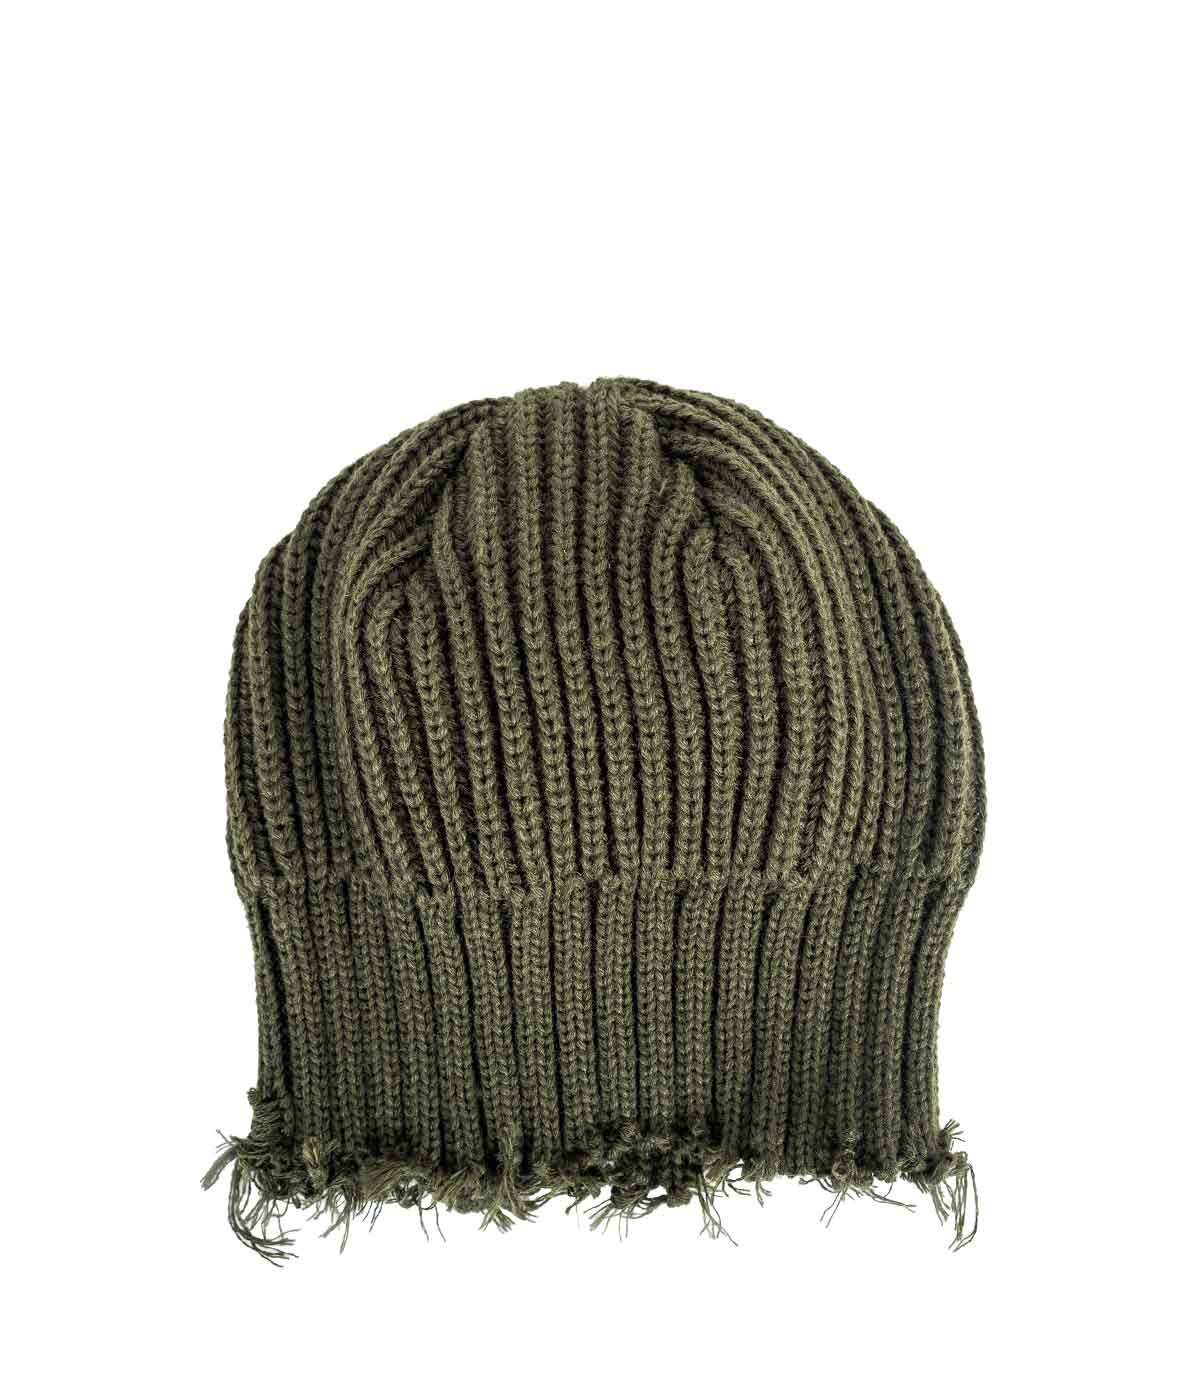 Khaki Distressed Beanie Hat